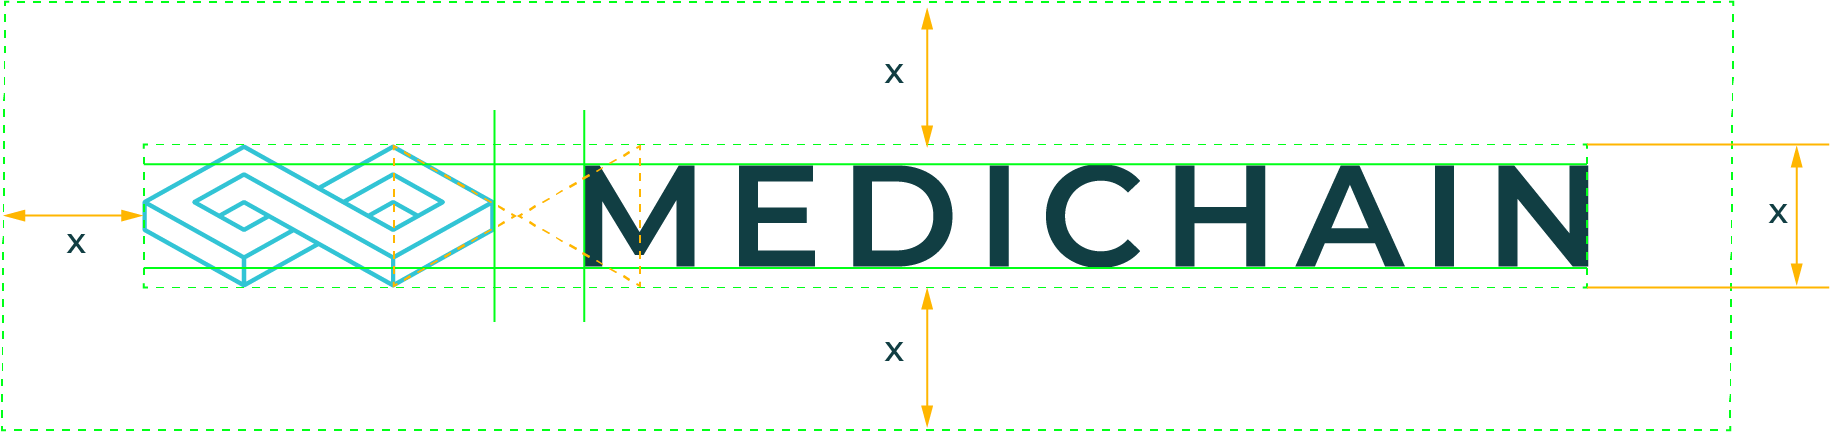 MediChain Logo Stacked Positioning